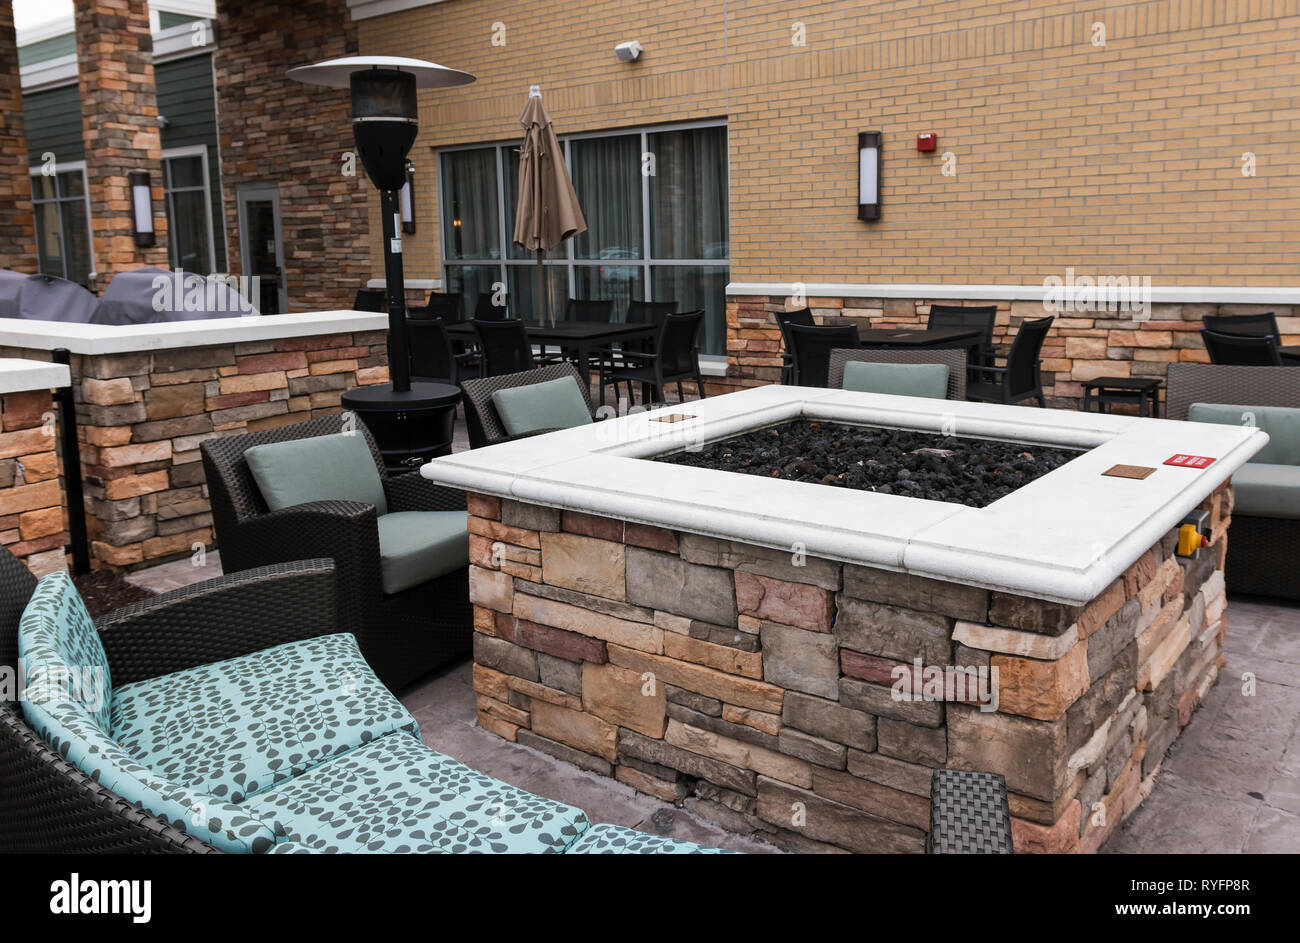 A relaxing area is set up outside of an upstate new york hotel that has a fire pit, couches, chairs and a heat lamp. - Stock Image